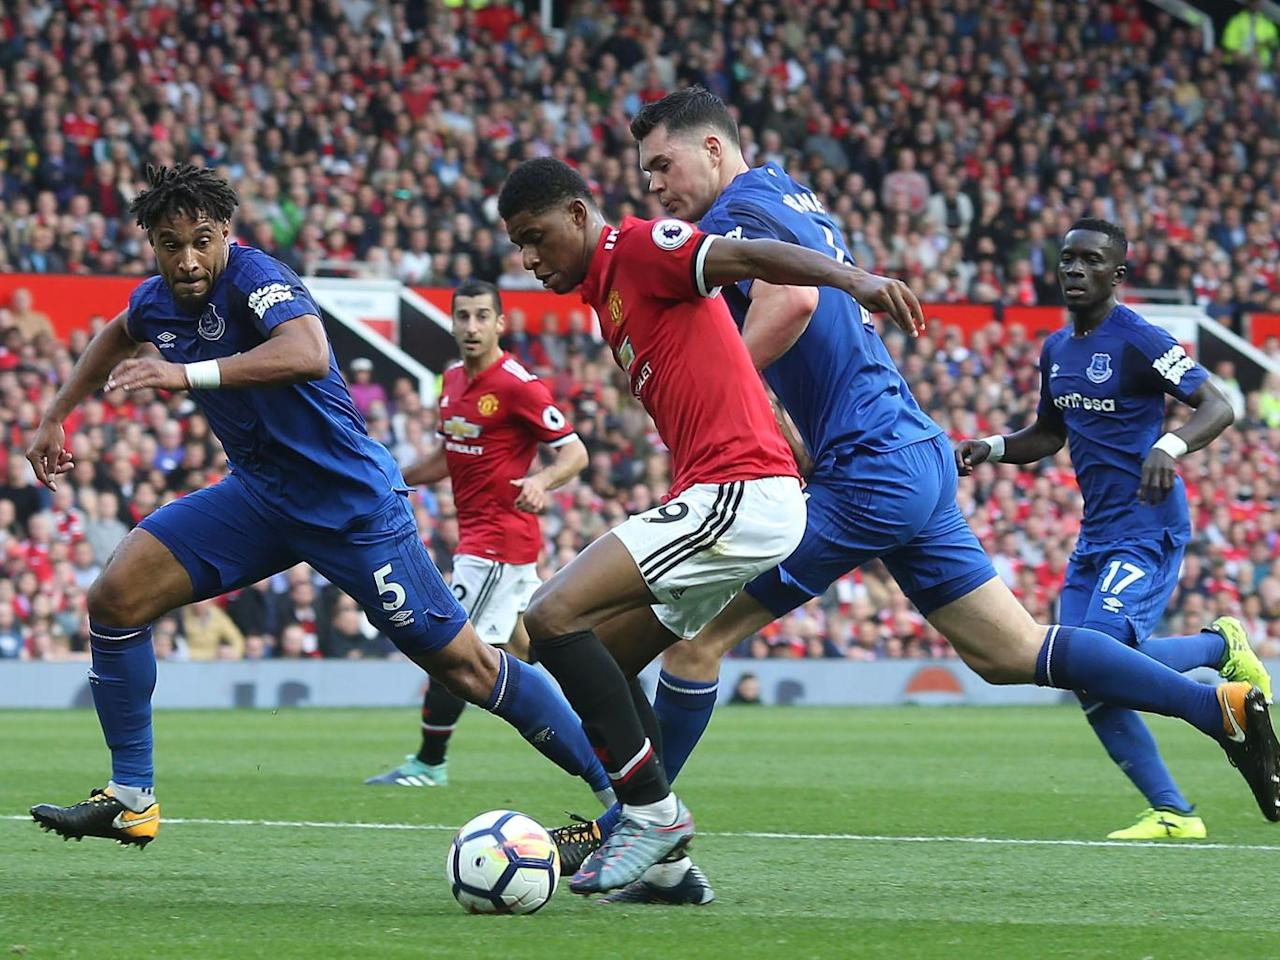 Wayne Rooney's return, Romelu Lukaku's wastefulness and more from Manchester United's win over Everton